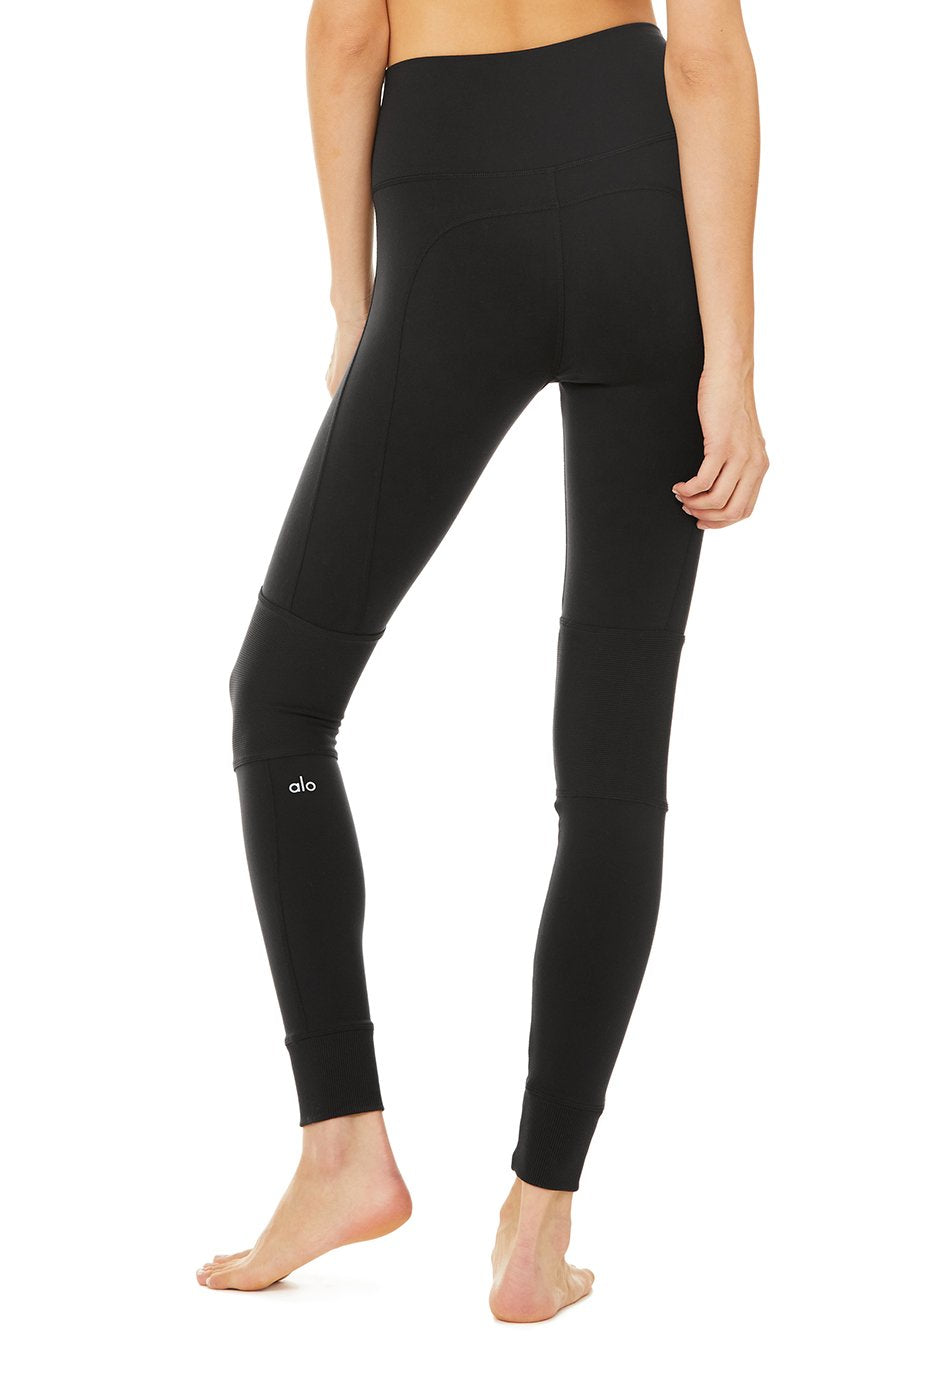 Alo Yoga High Waist Avenue Legging ~ Black